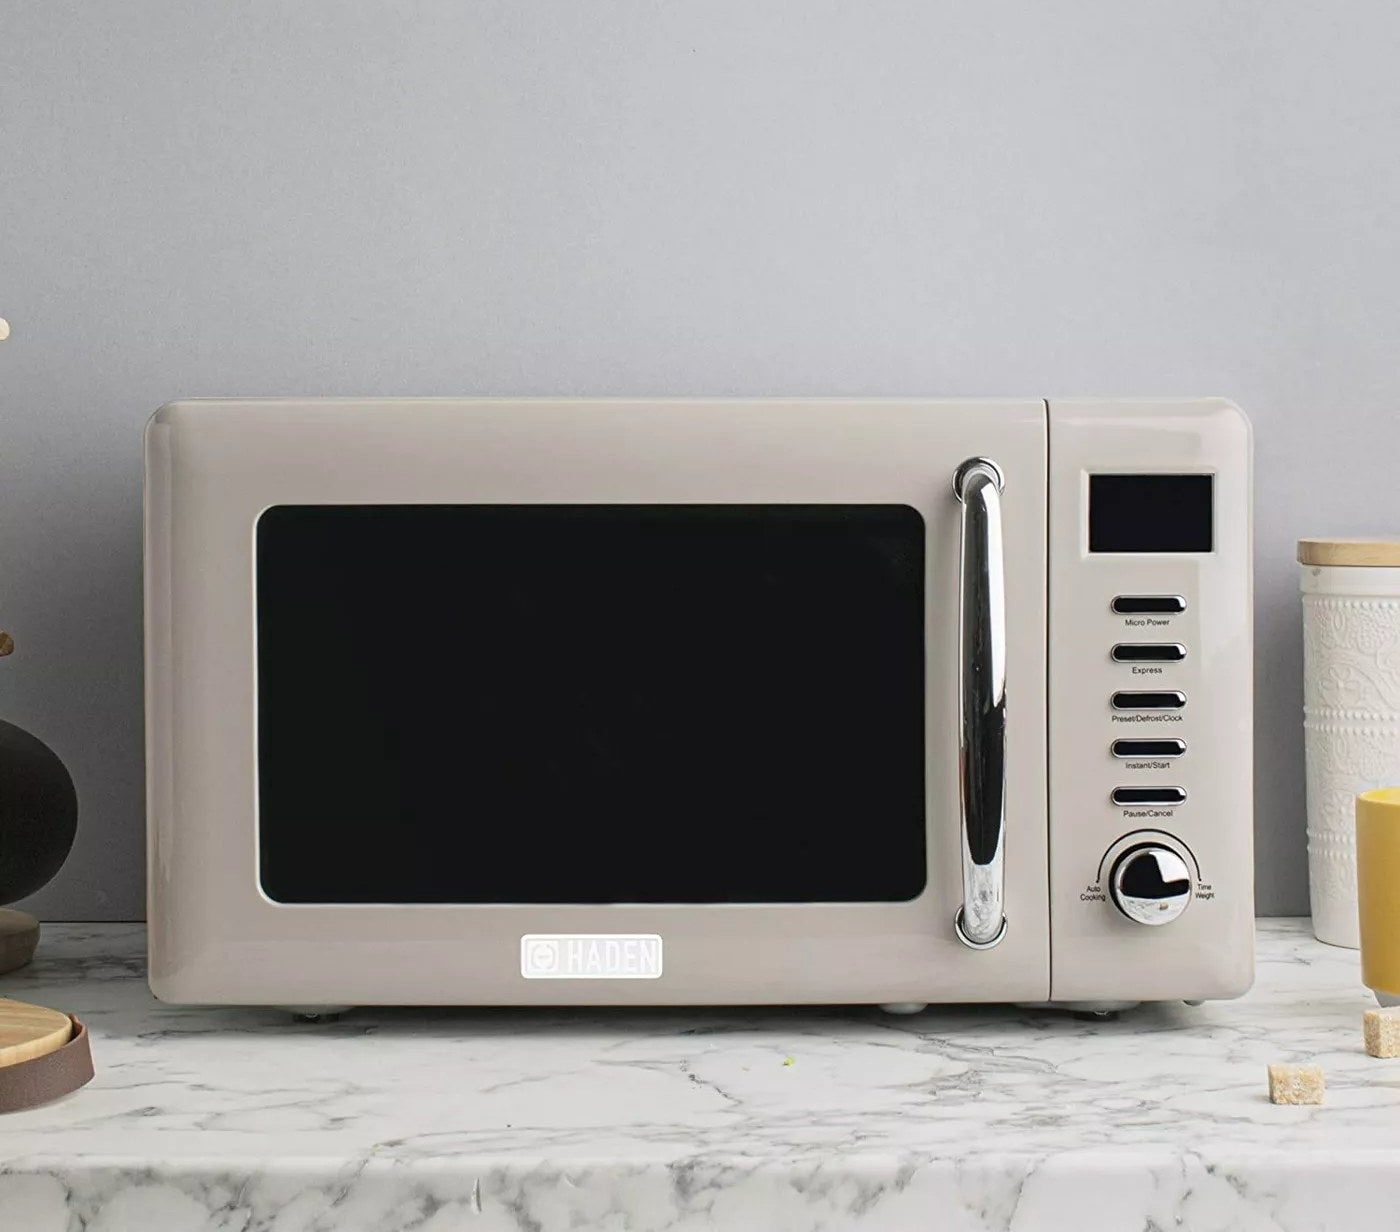 The microwave sitting on a marble countertop